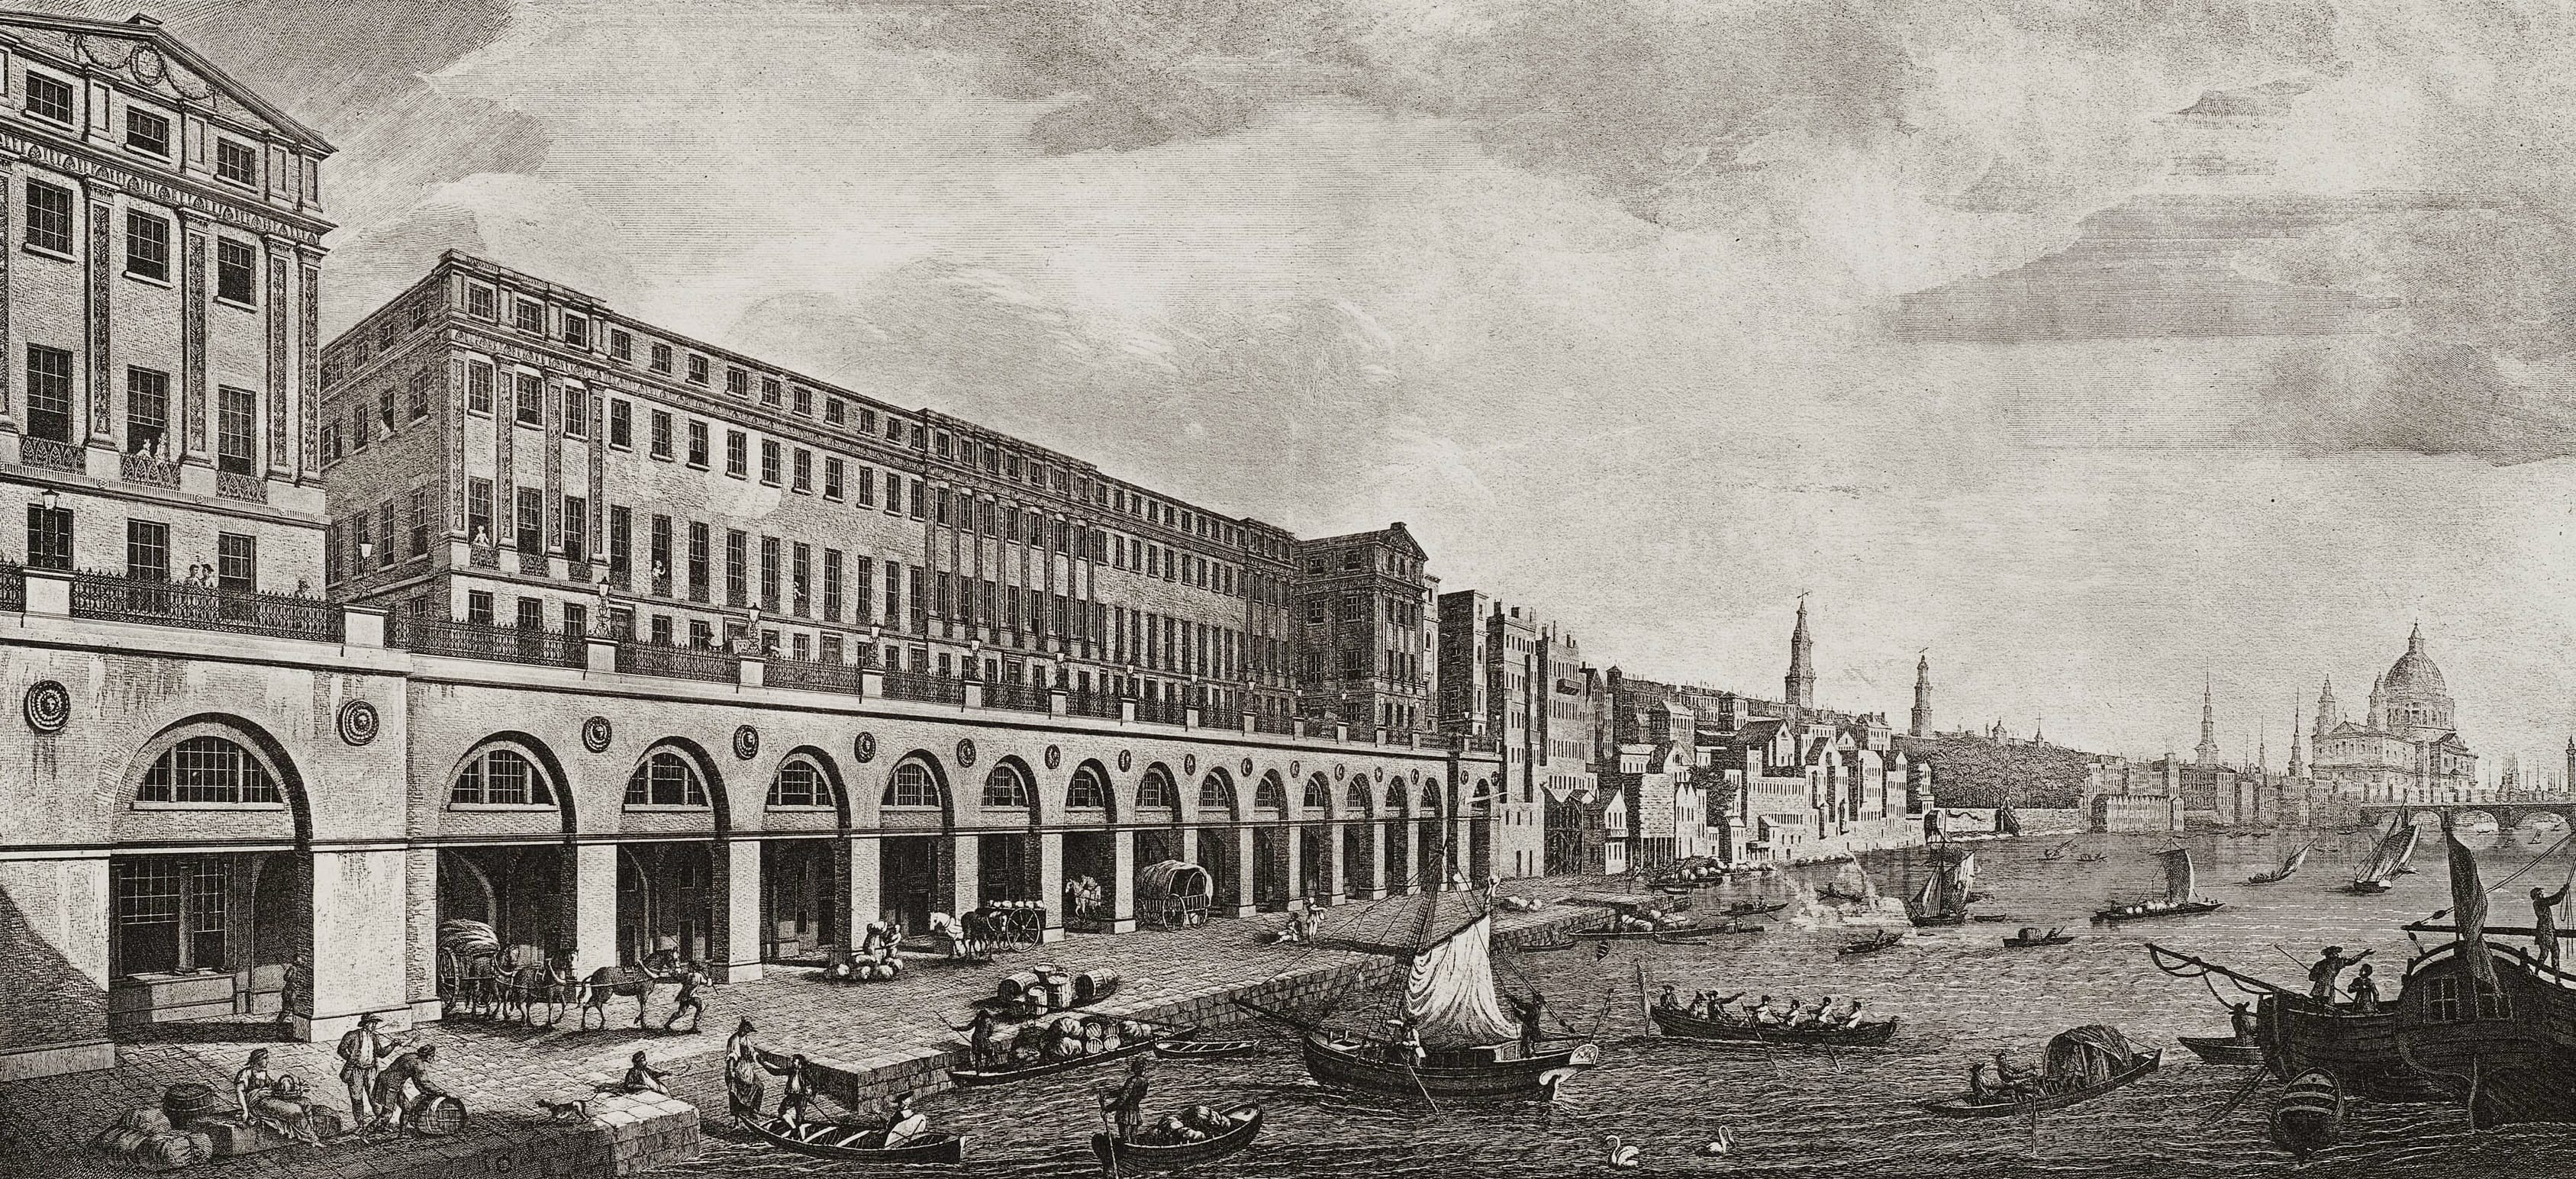 1 The Adelphi and the Thames riverside, looking east. Engraving by Benedetto Pastorini, reproduced in the third (posthumous) volume of the Adam brothers' Works in Architecture (1822)